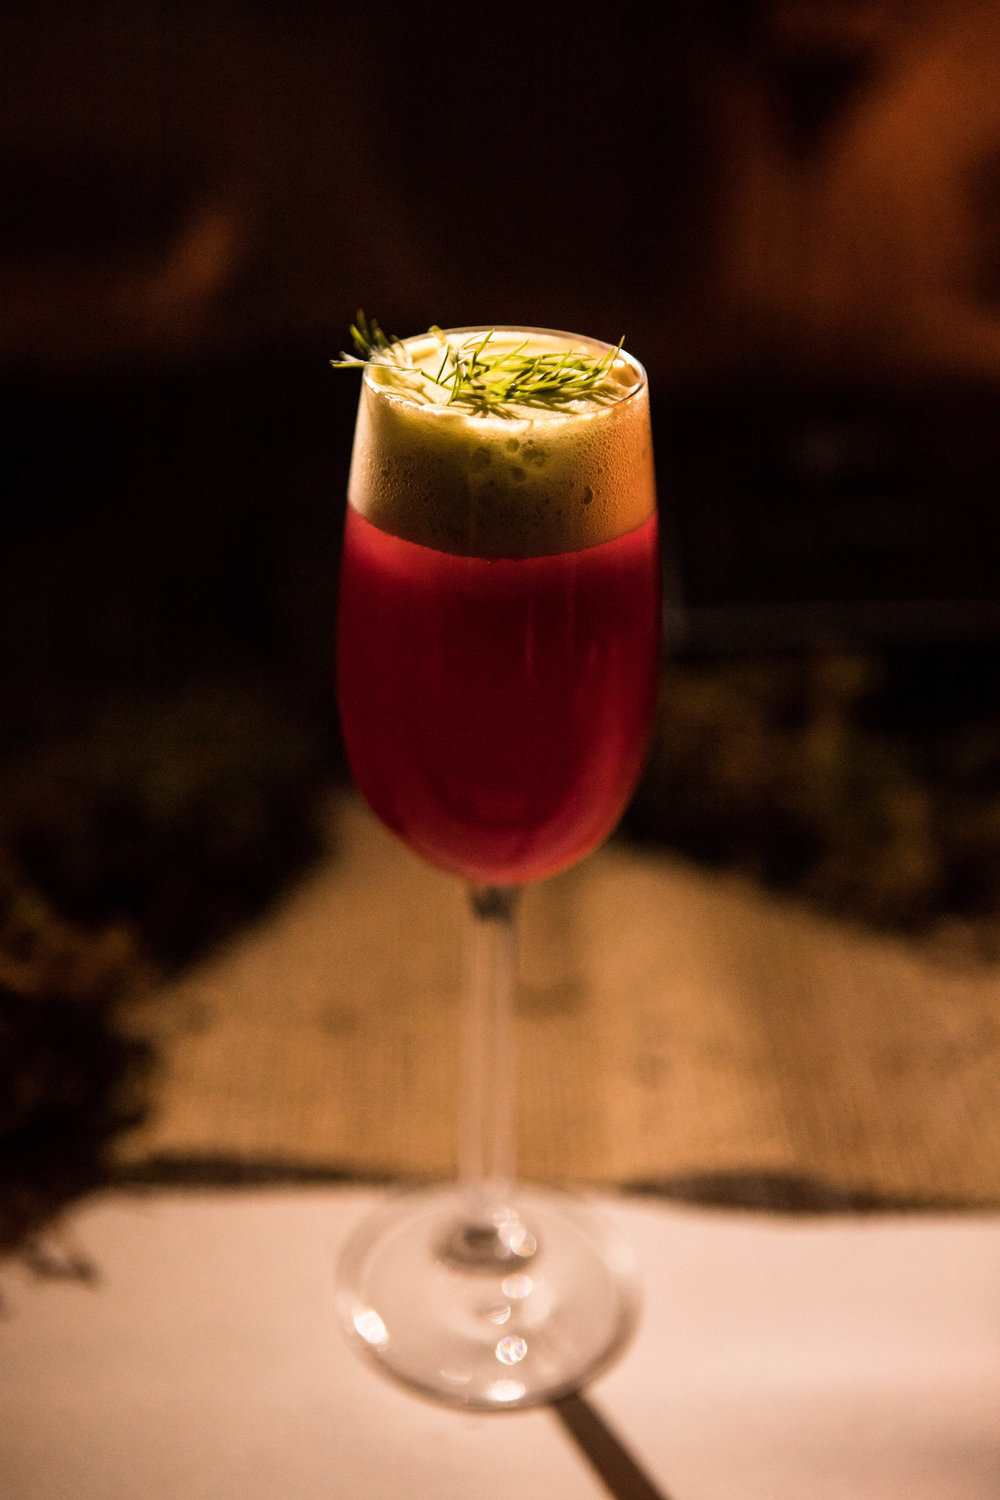 Red Beet Sour infused with Absolut, verjus, wildflower honey topped with a refreshing cucumber foam and garnished with dill.